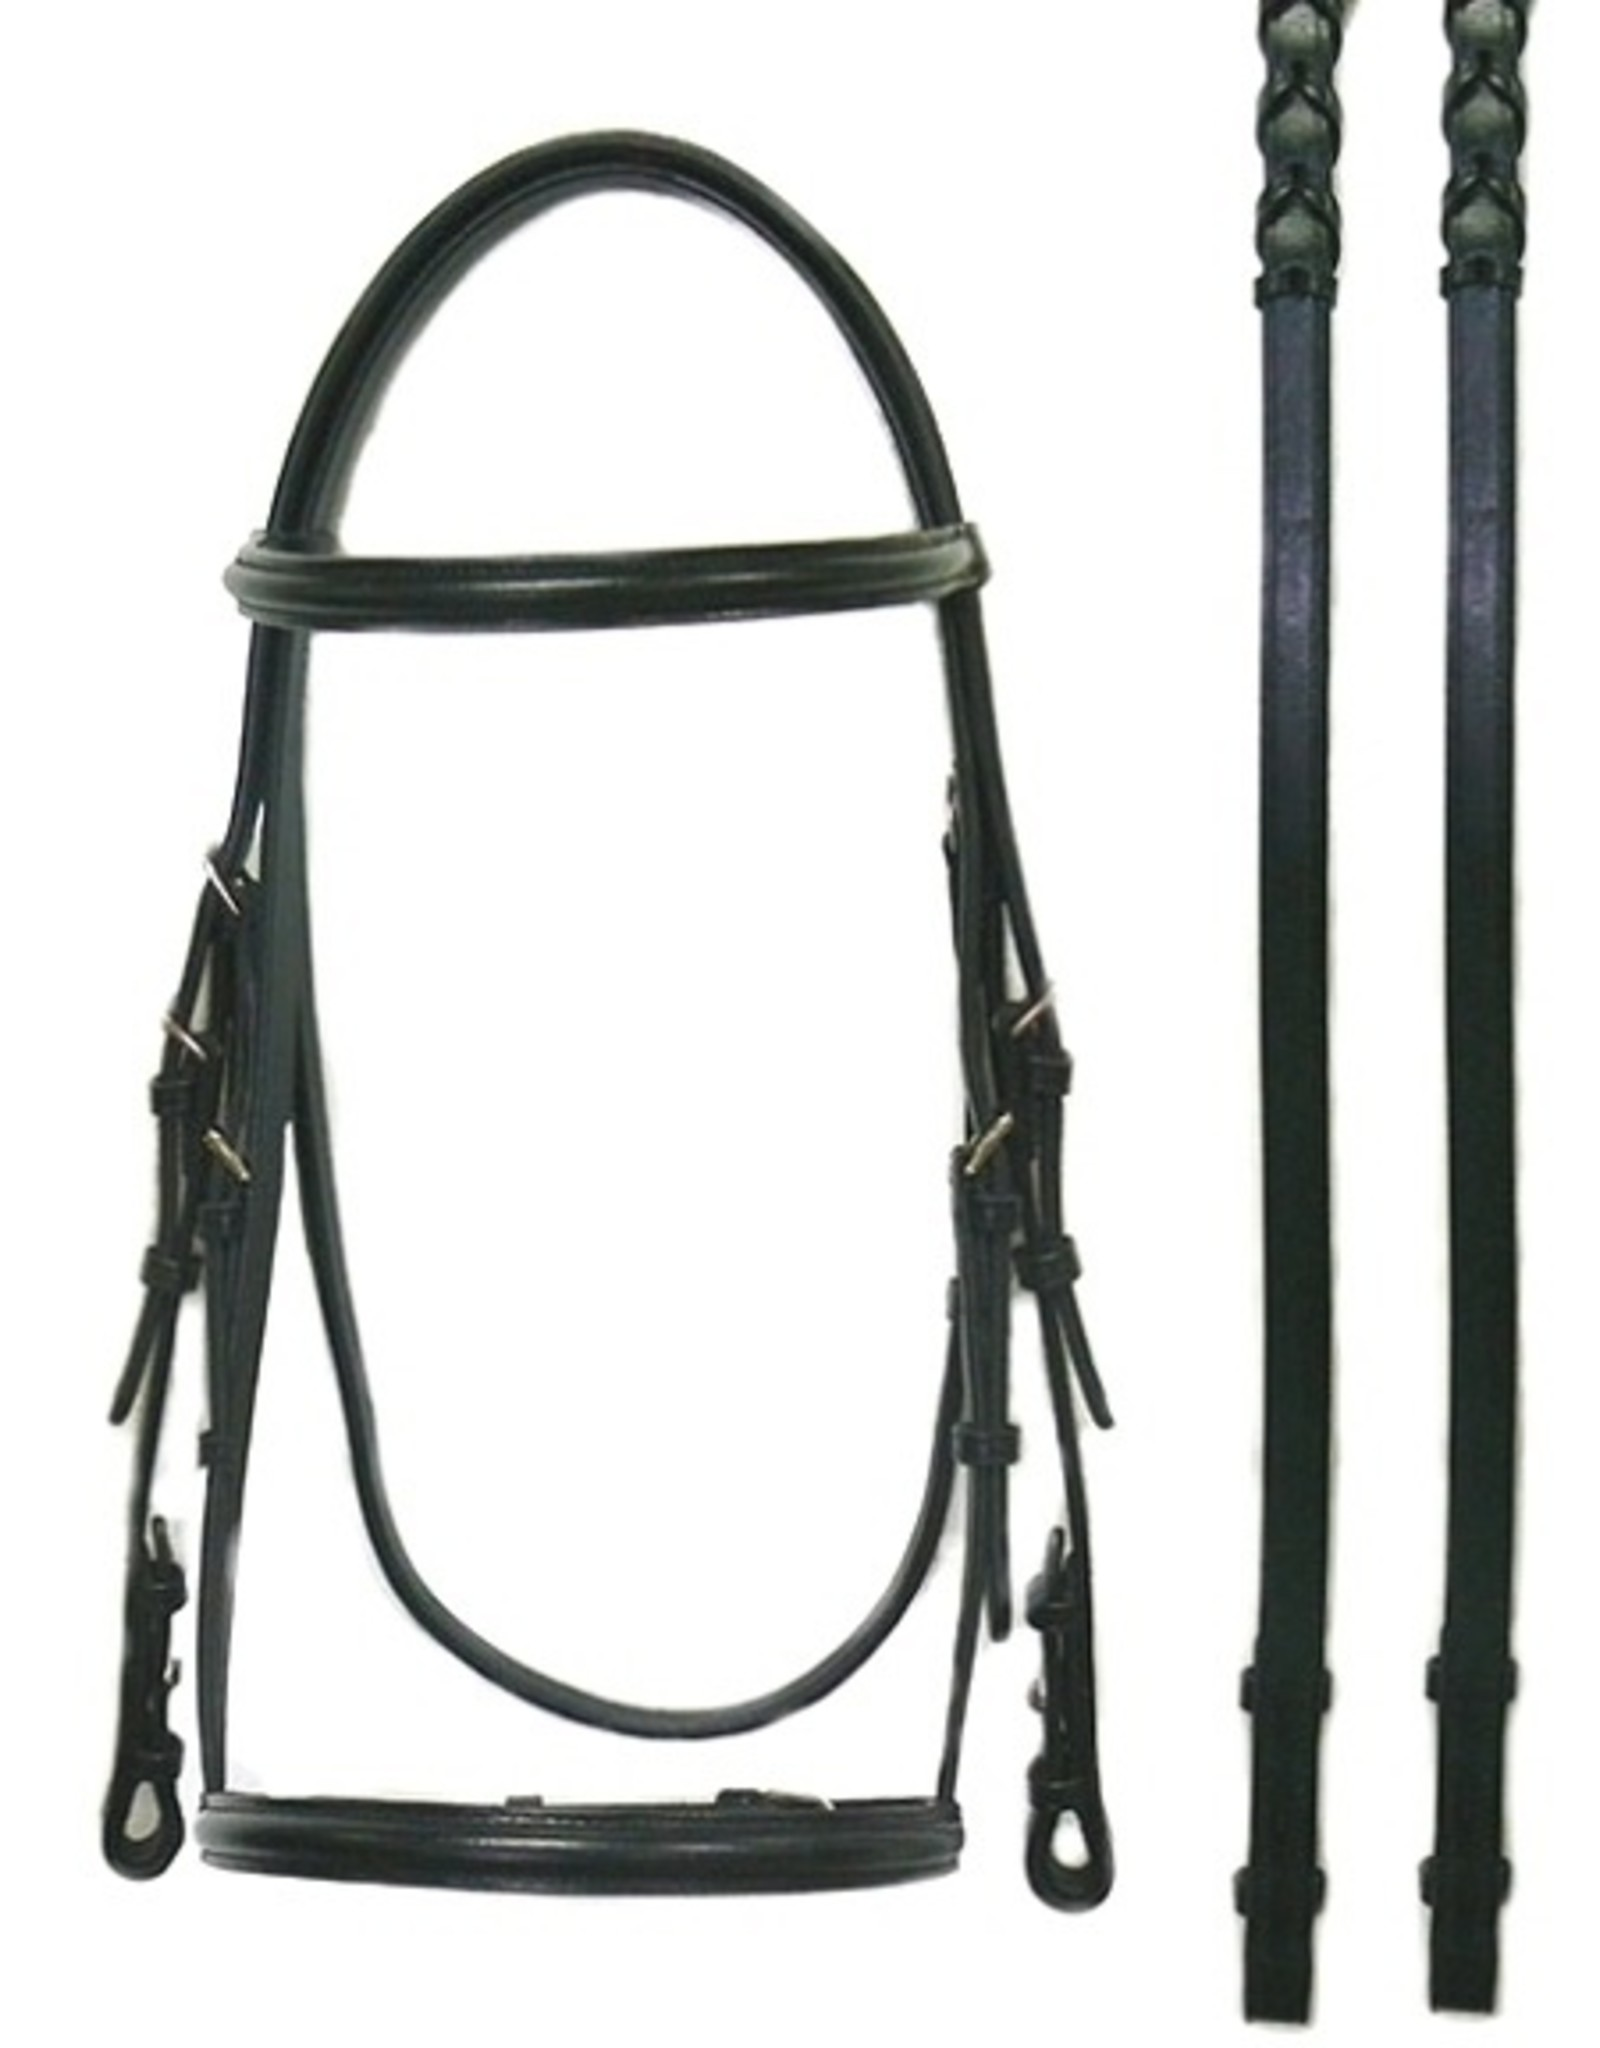 Bobby's Silver Spur Raised Snaffle Bridle